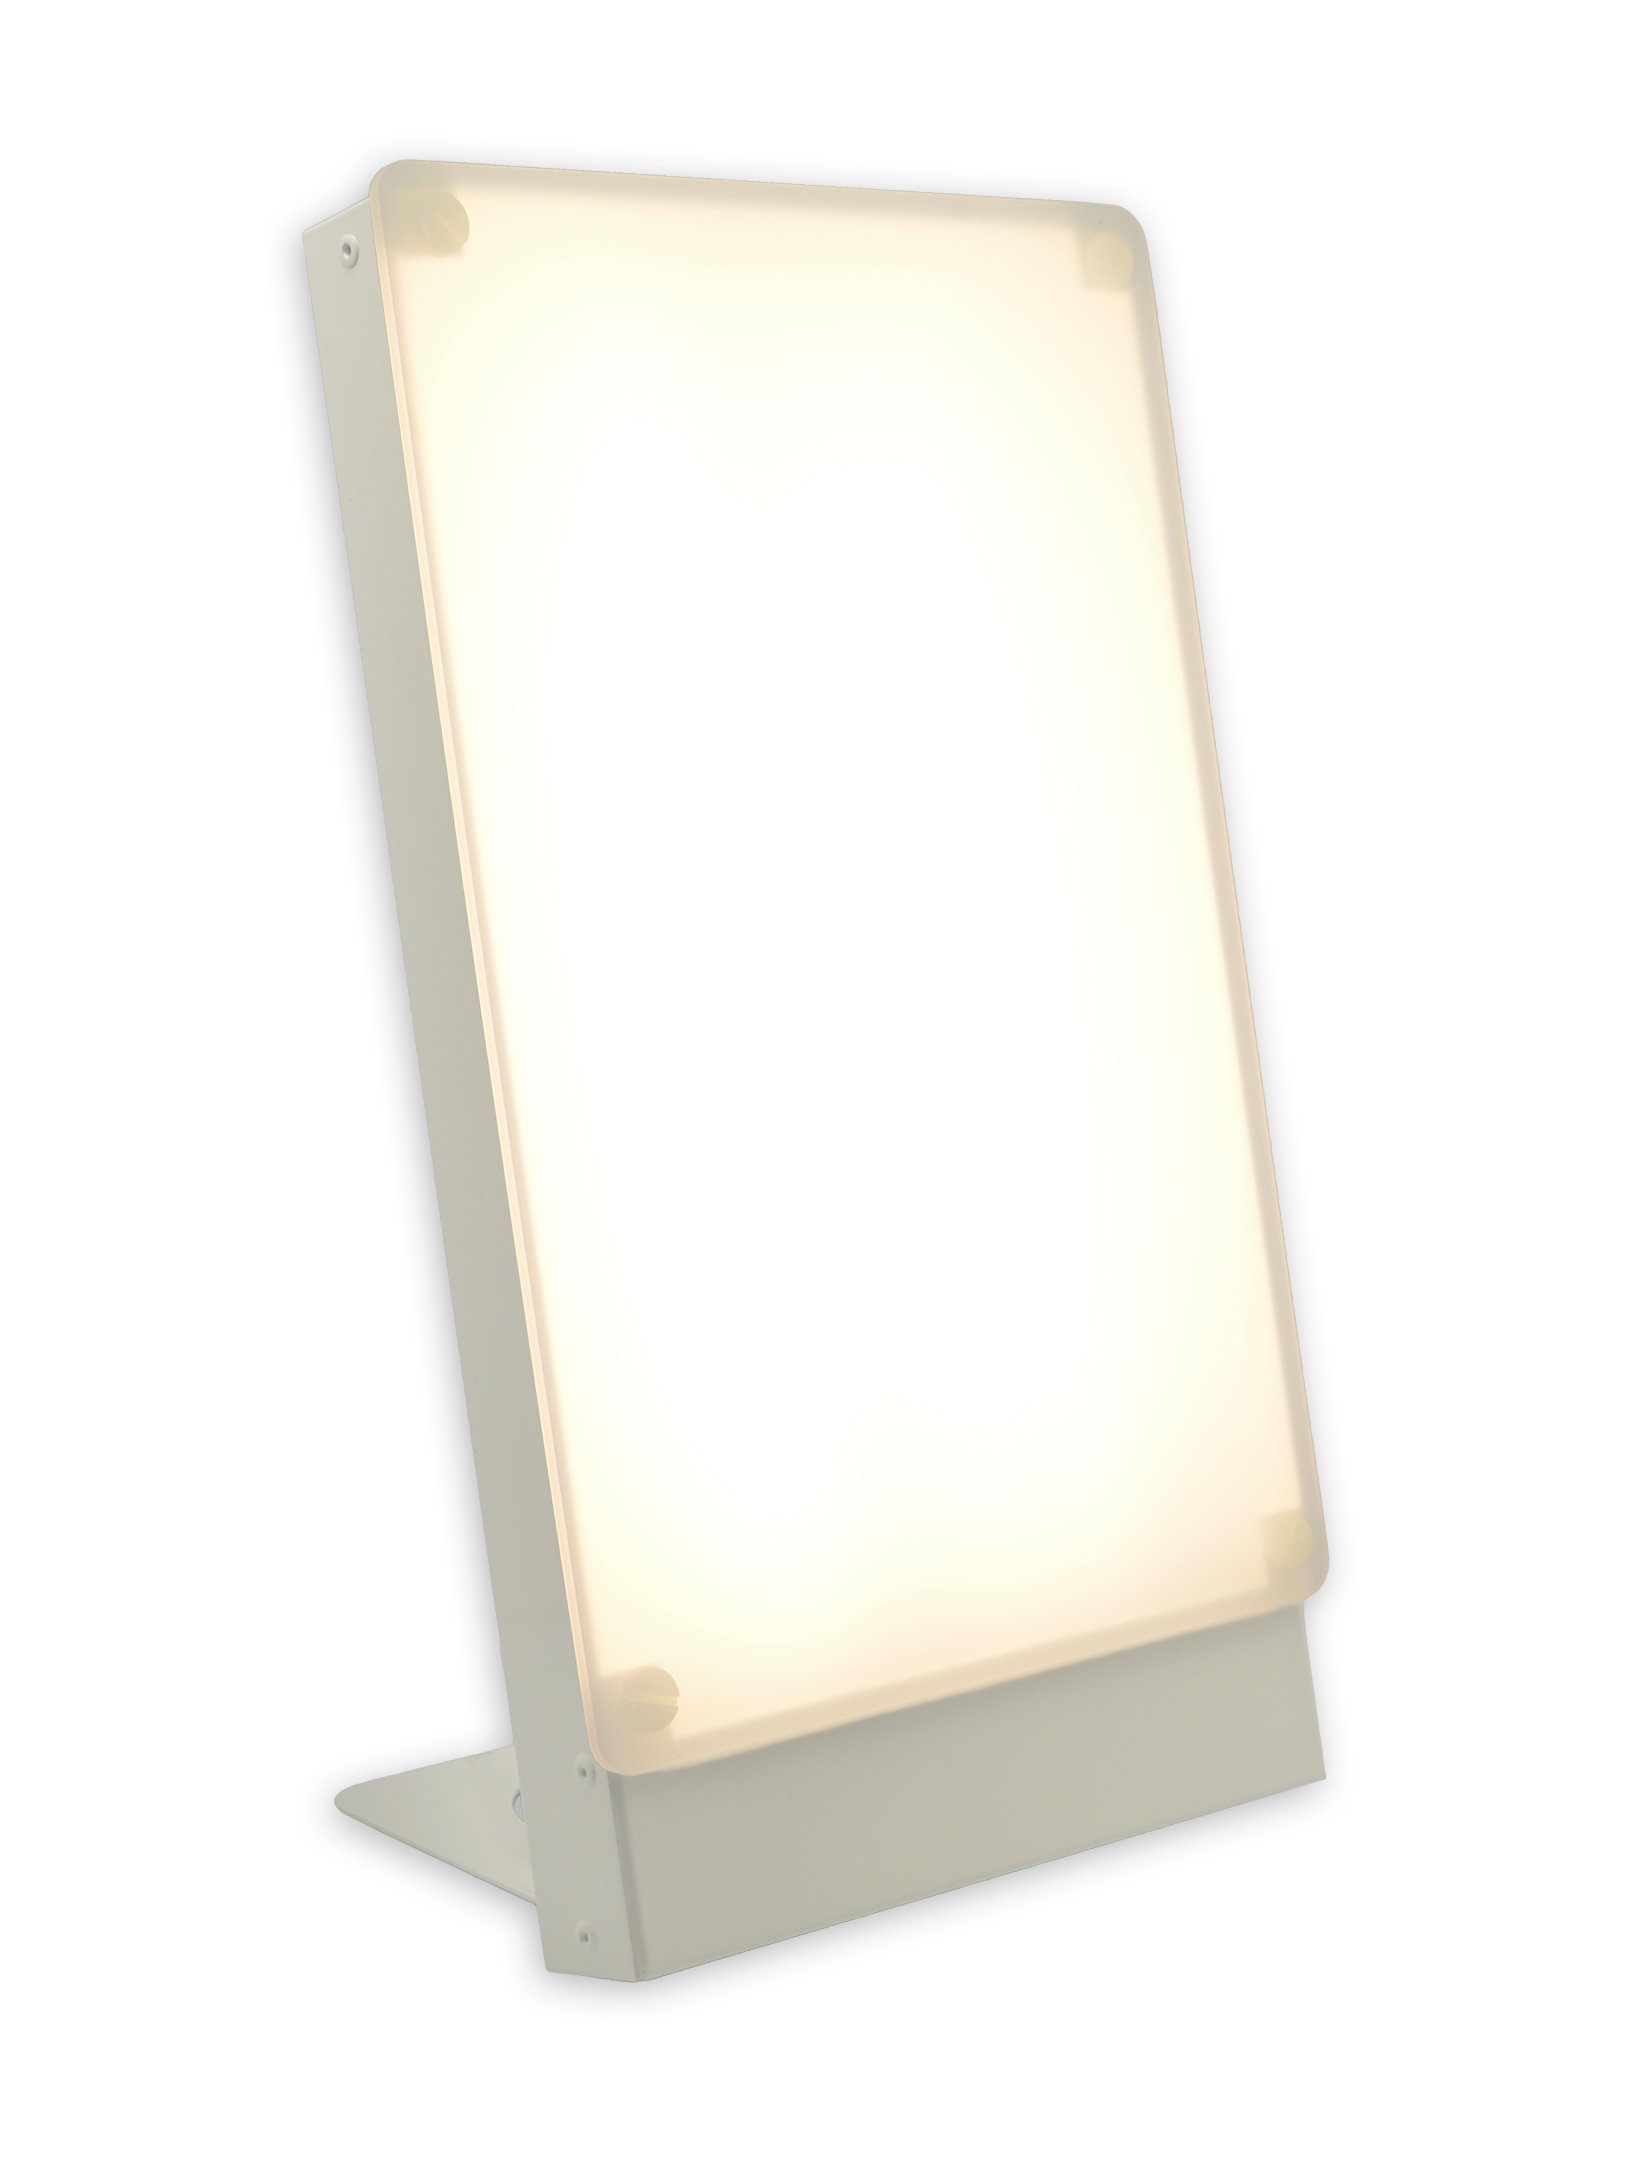 Northern Light Technology Travelite 10,000 Lux Bright Light Therapy Portable Light Box, Beige by Northern Light Technologies